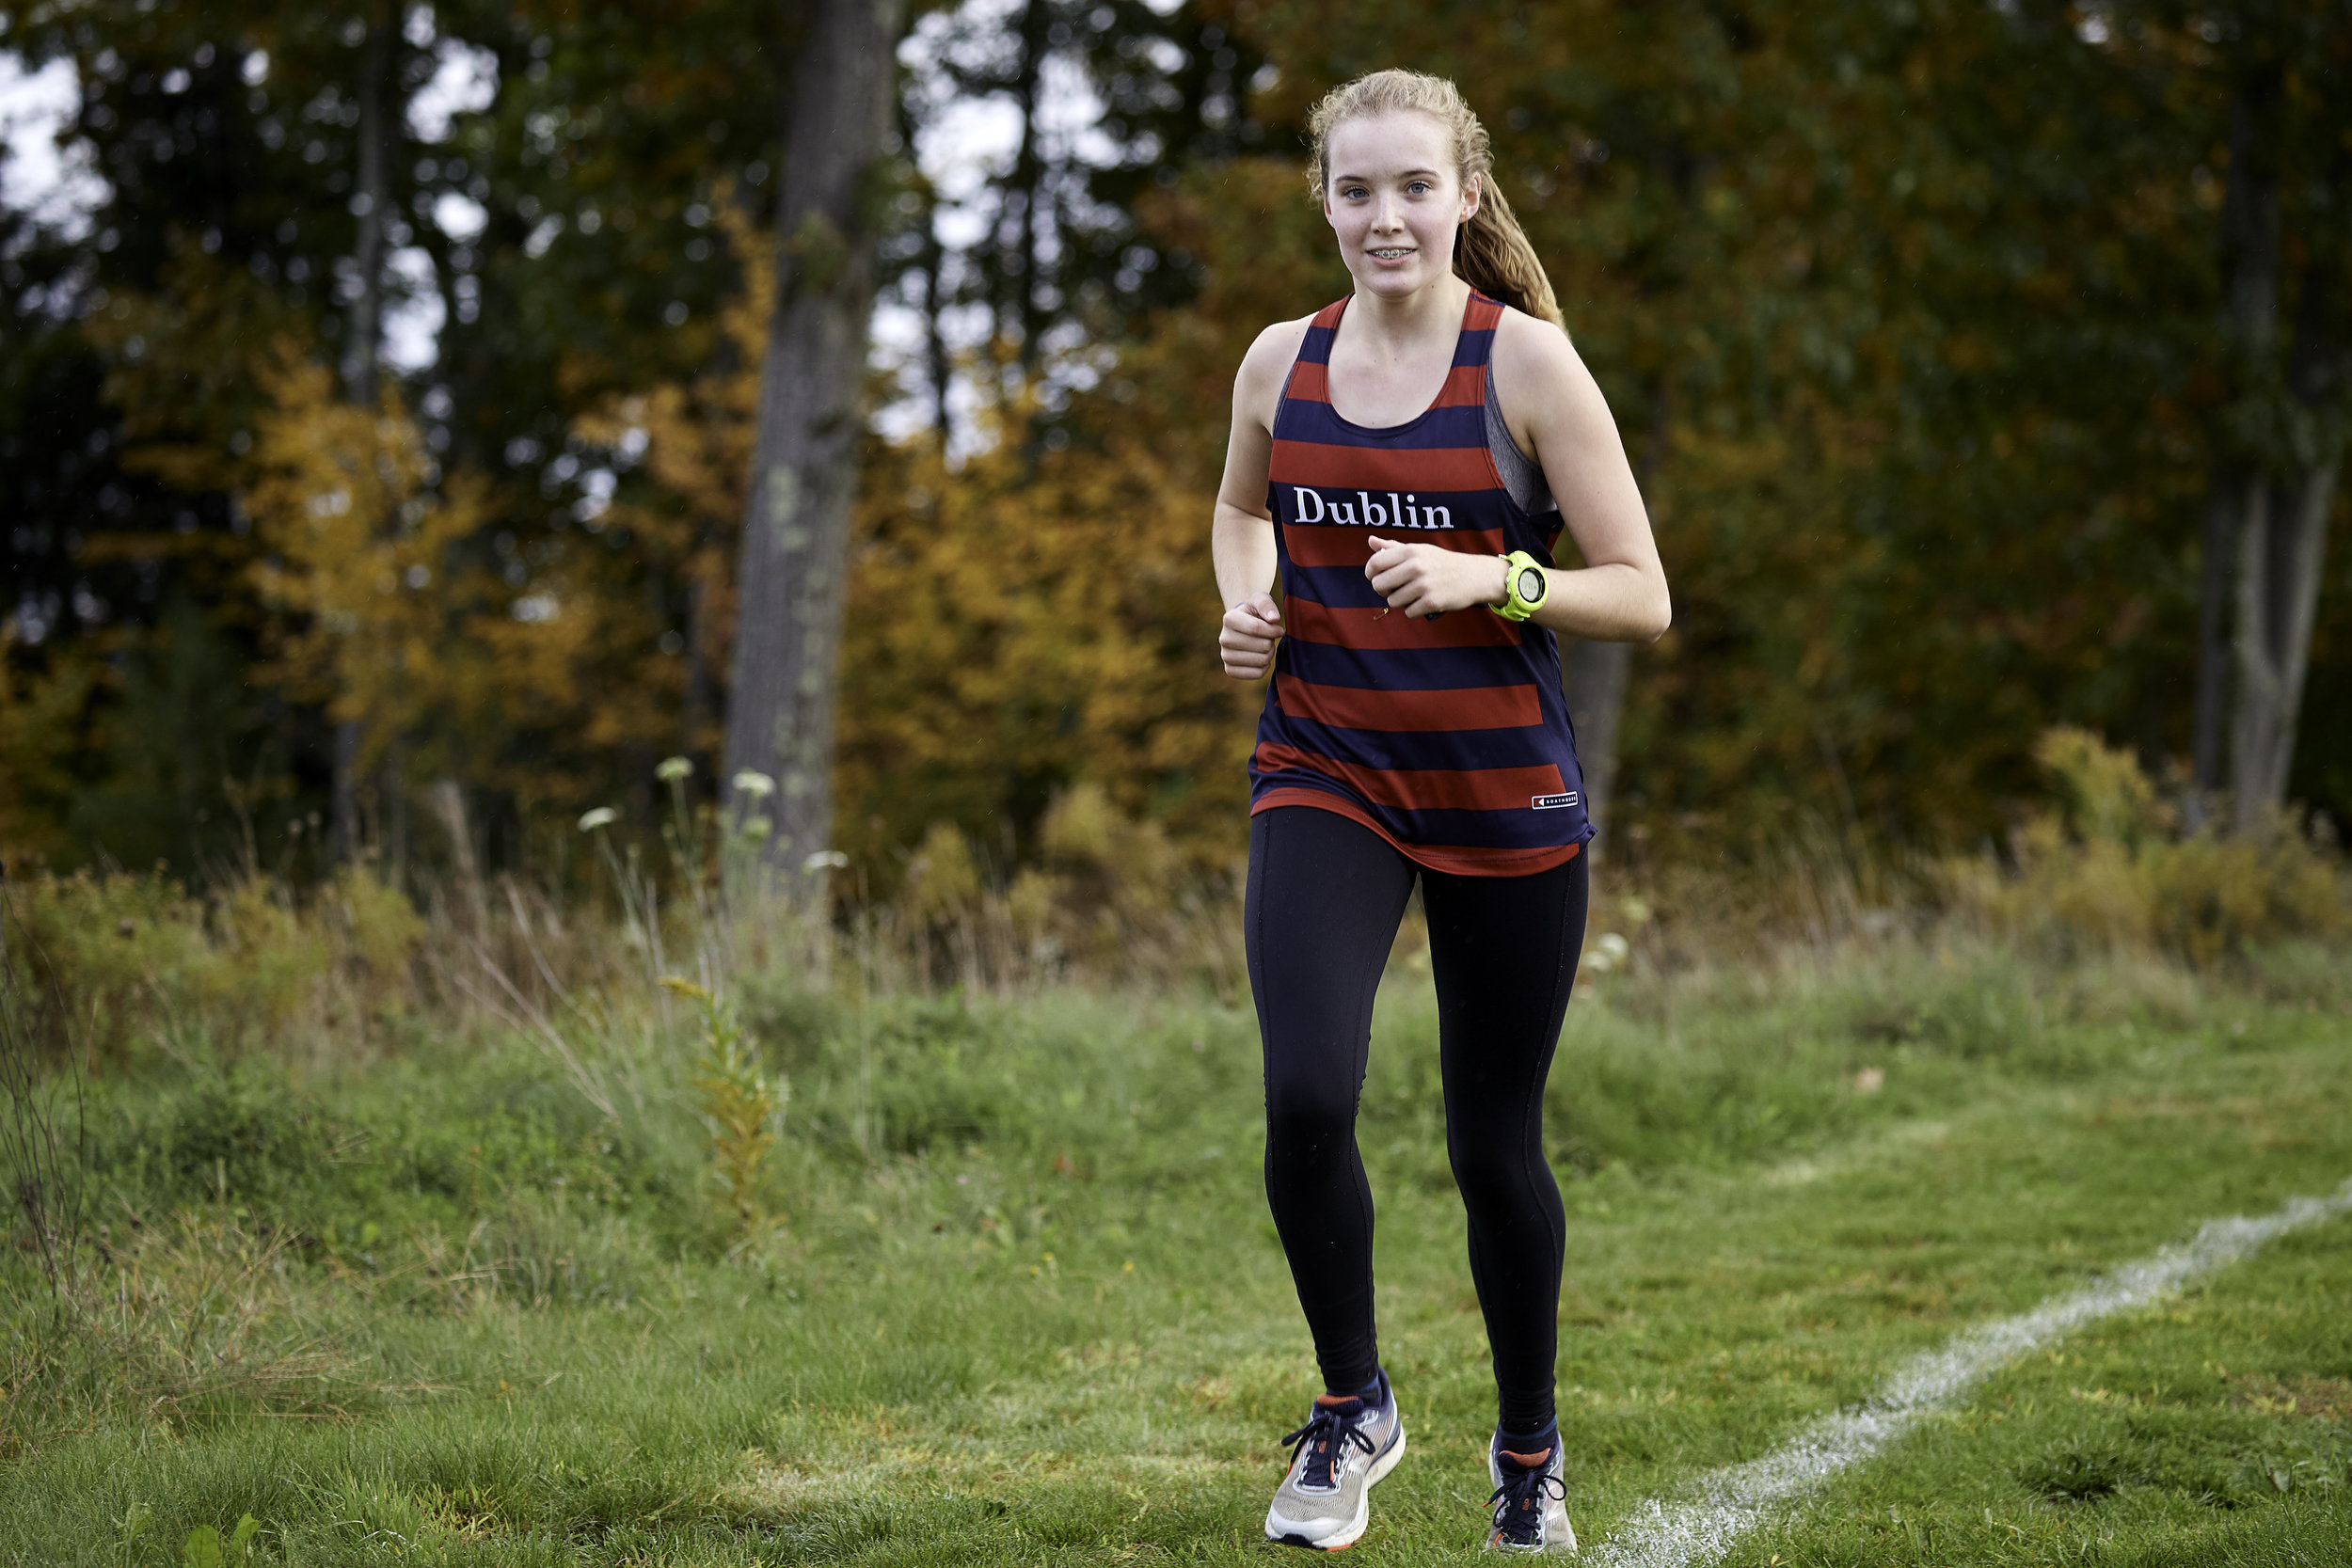 Dublion Invitational - October 12, 2018 - 136587.jpg